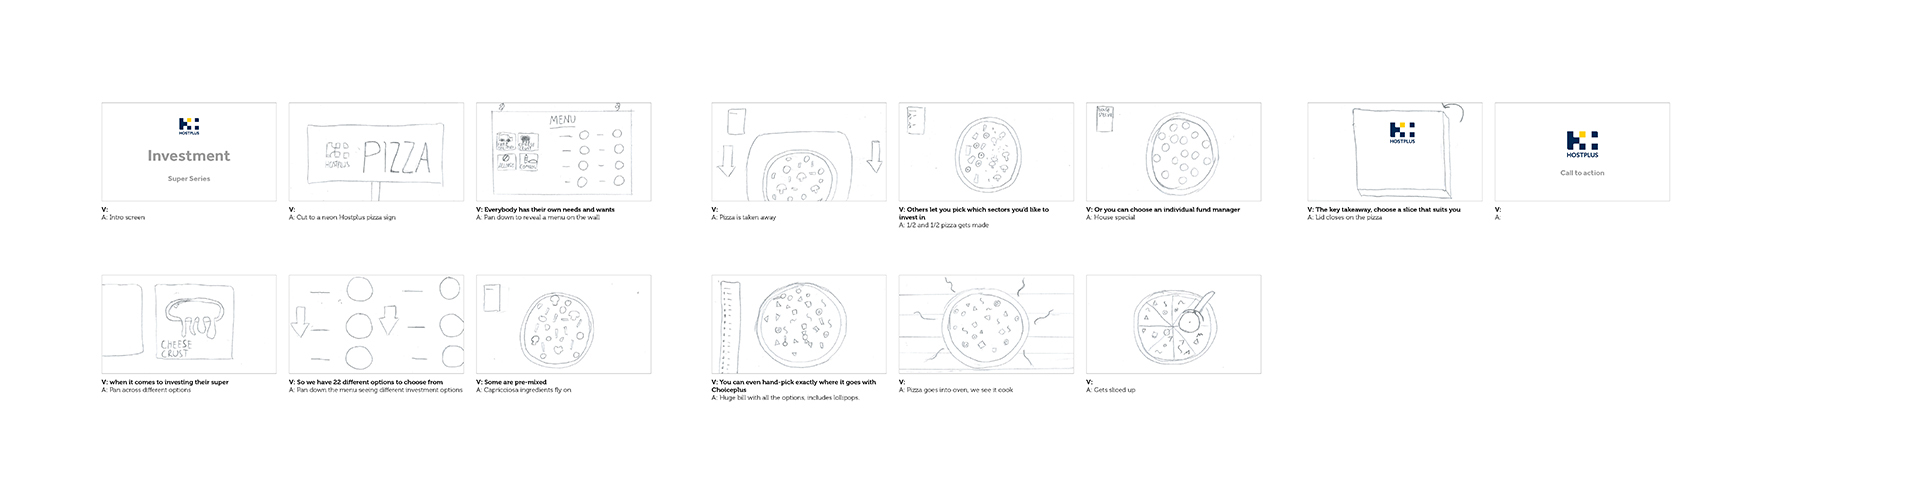 Investment Storyboard